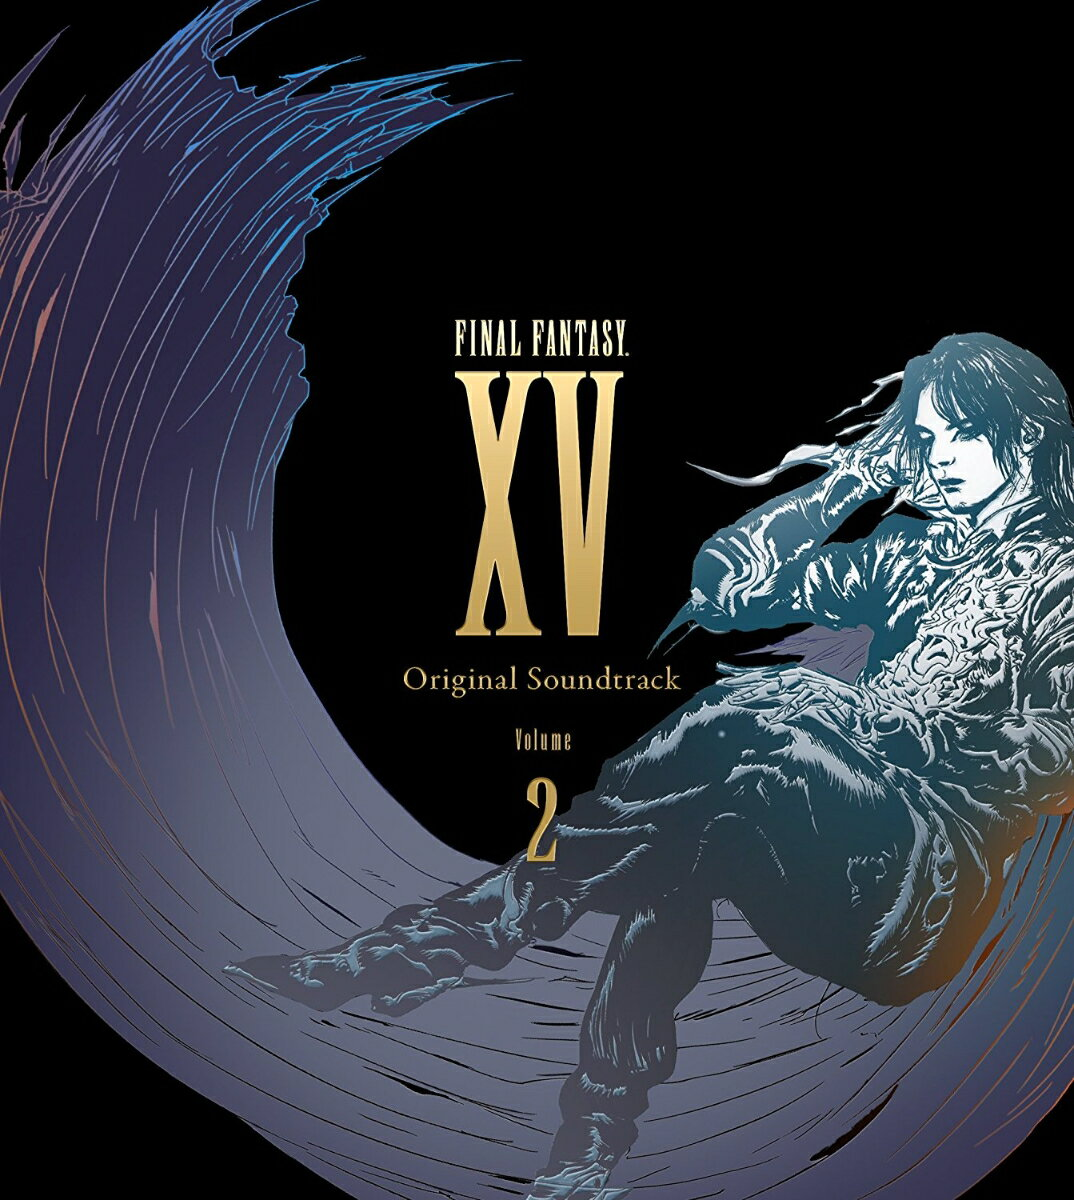 ゲームミュージック, その他 FINAL FANTASY XV Original Soundtrack Volume 2 ()